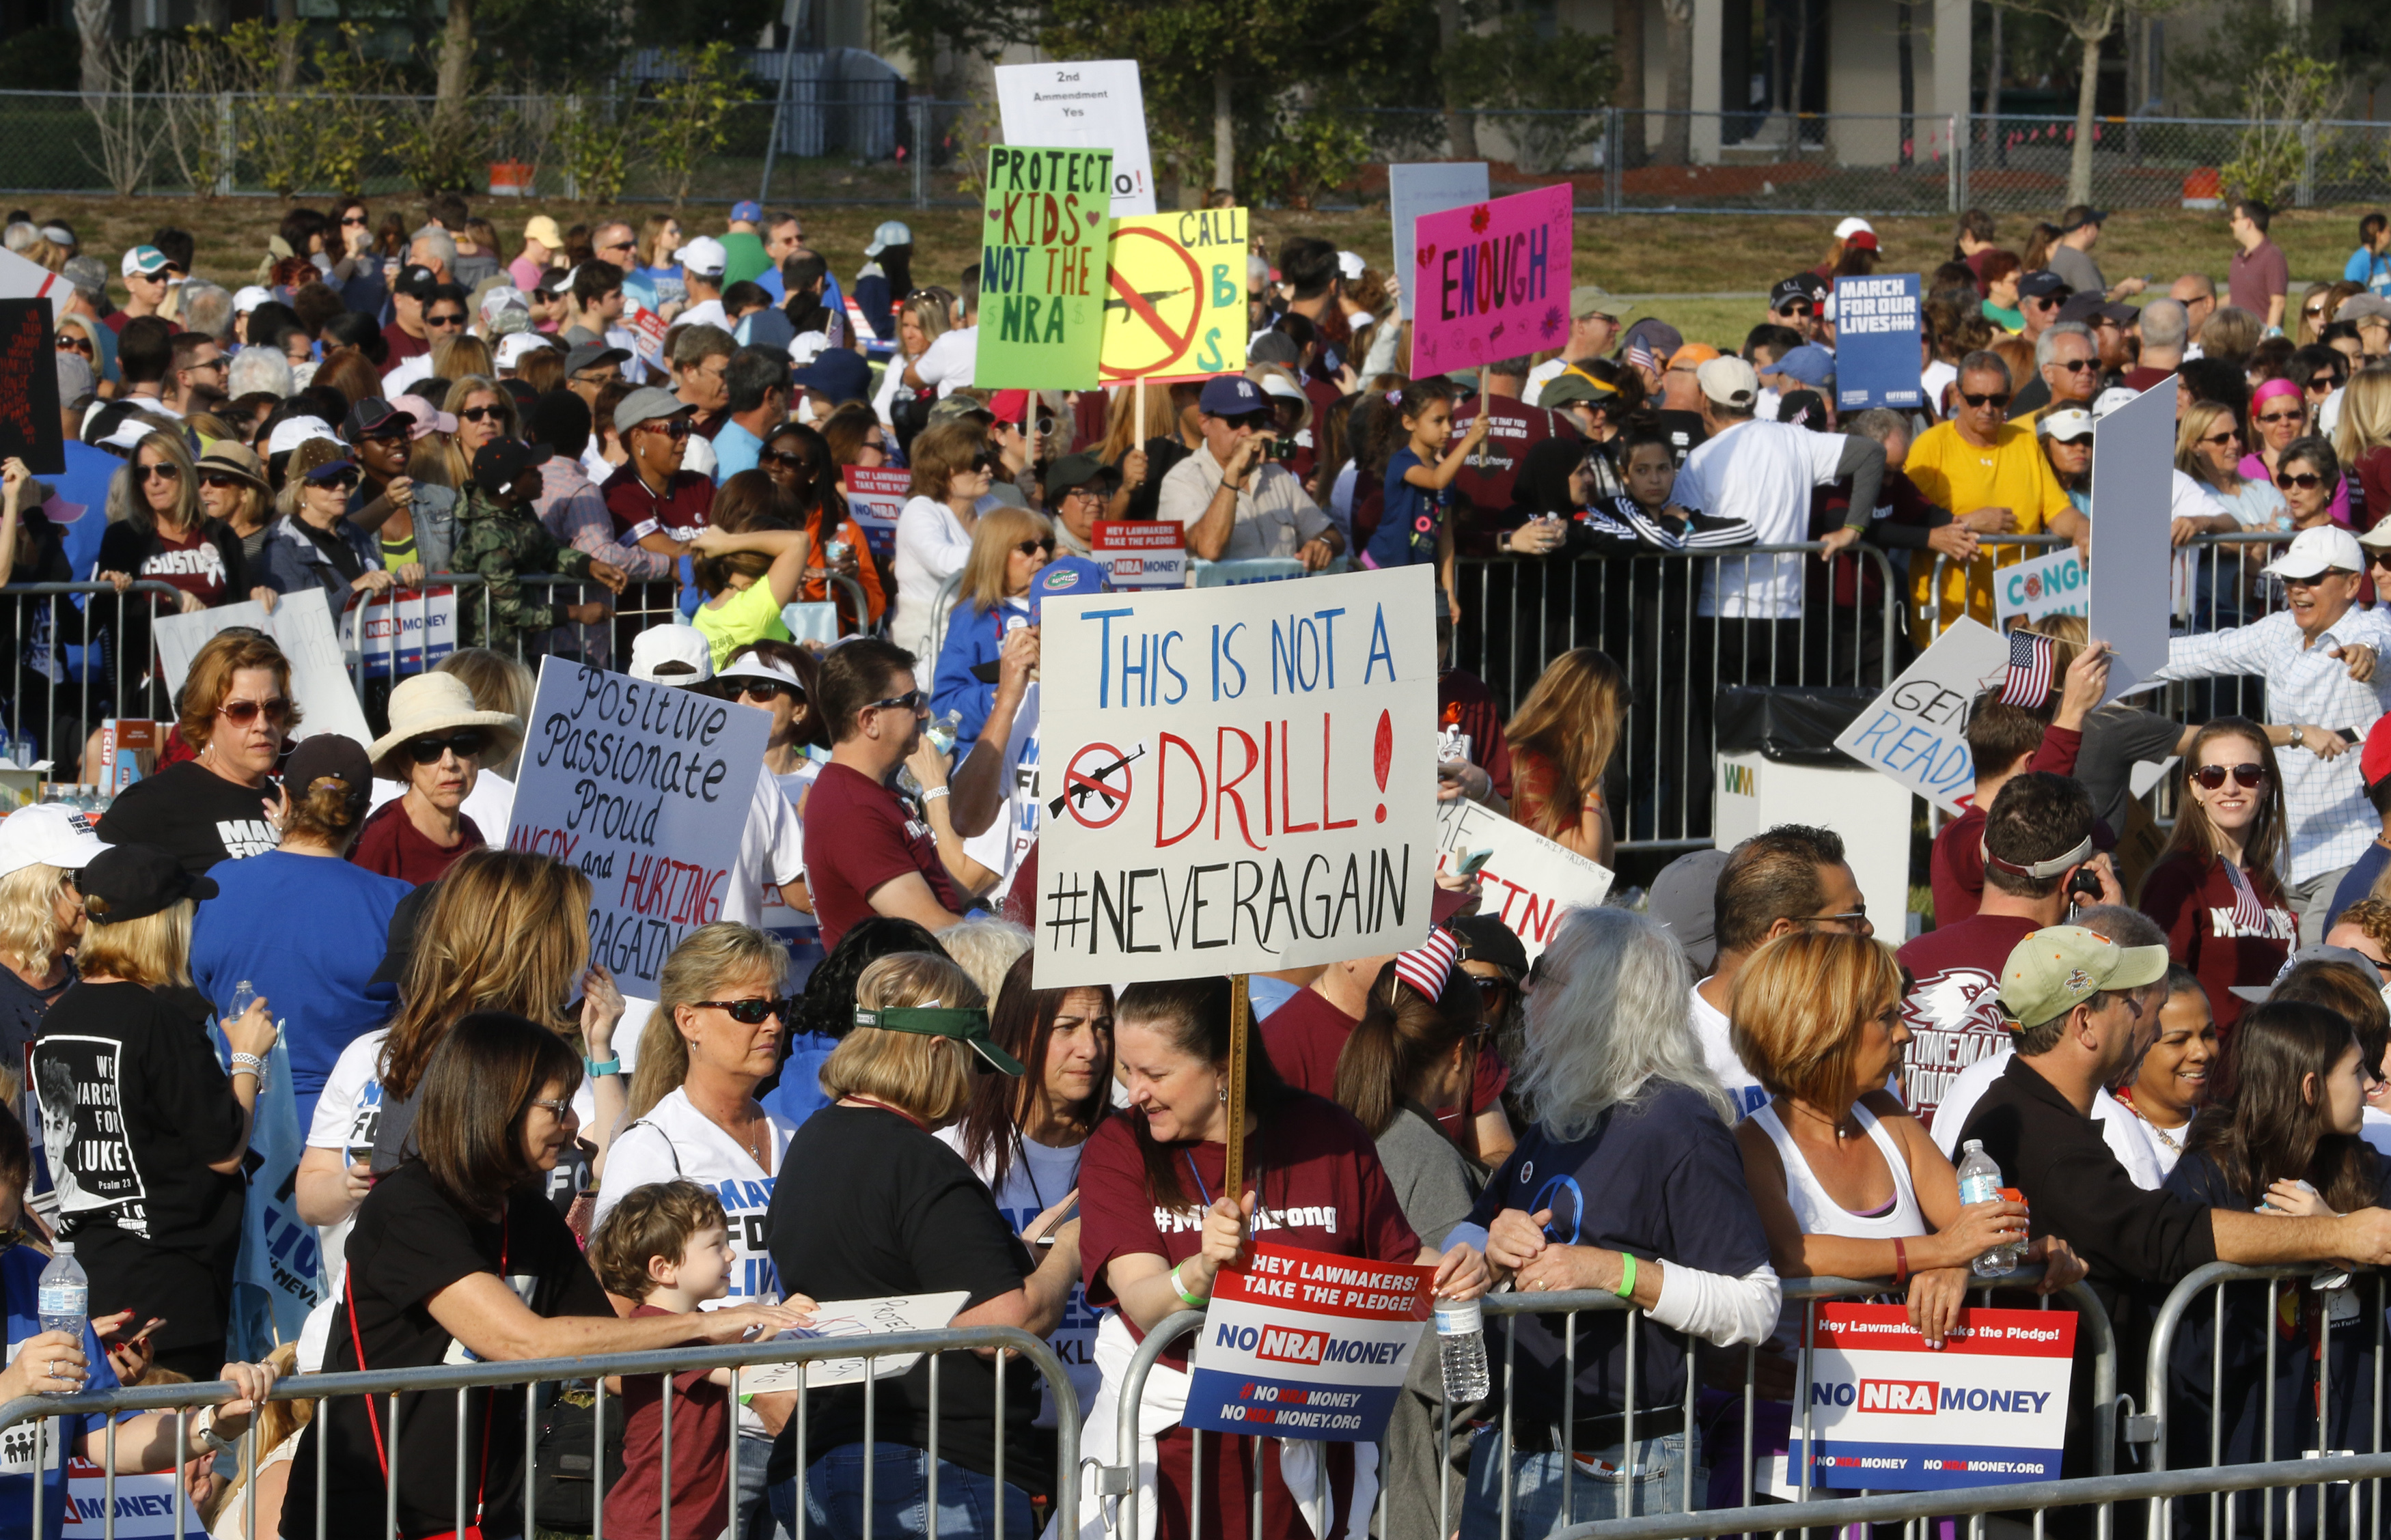 <div class='meta'><div class='origin-logo' data-origin='AP'></div><span class='caption-text' data-credit='AP Photo/Joe Skipper'>Participants gather during the March For Our Lives-Parkland event Saturday, March 24, 2018, in Parkland, Fla.</span></div>